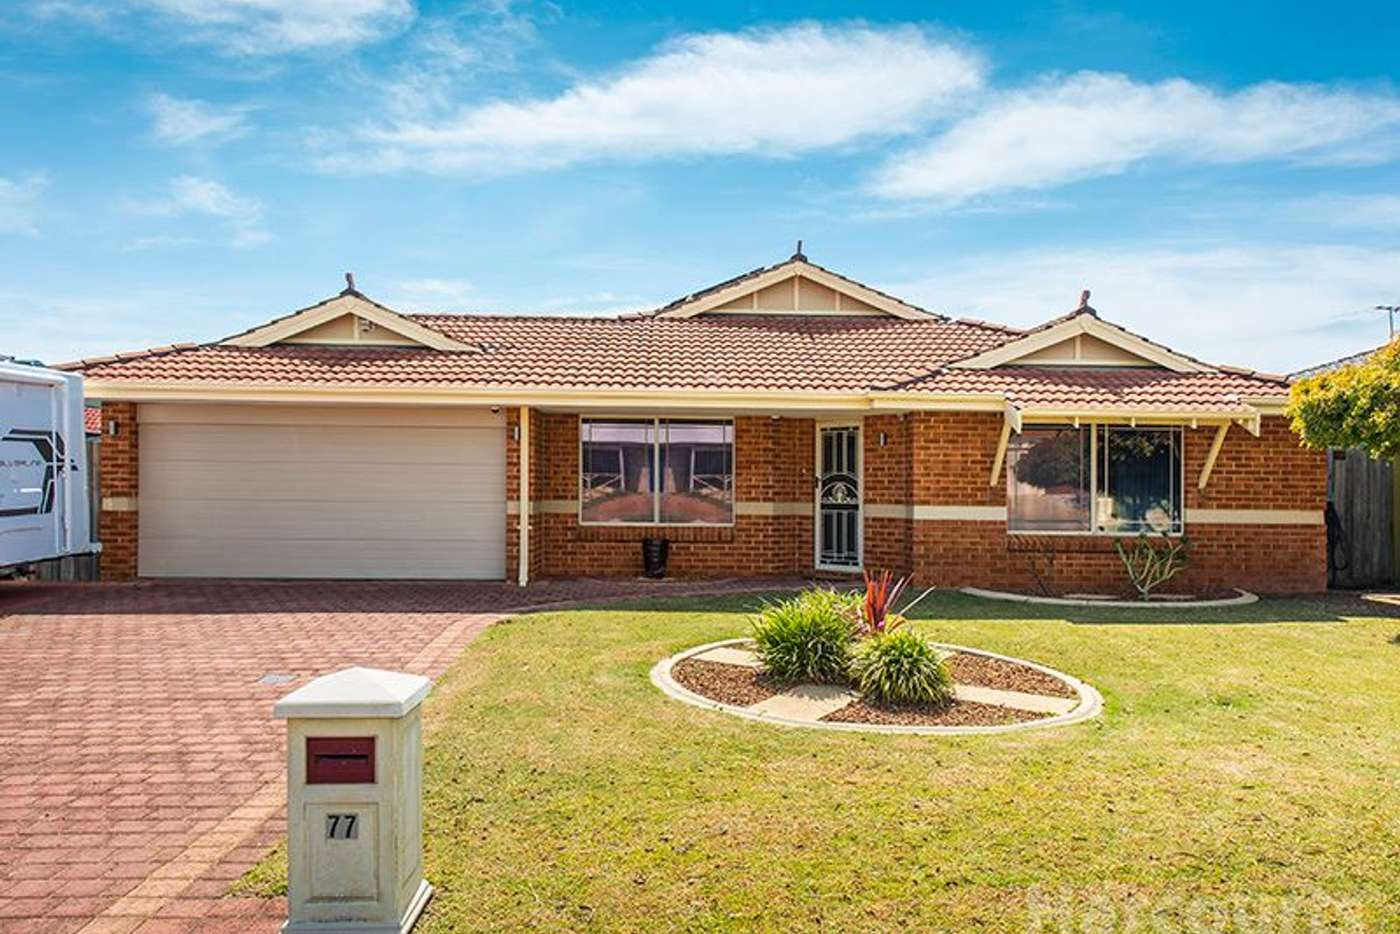 Main view of Homely house listing, 77 Caledonia Avenue, Currambine WA 6028